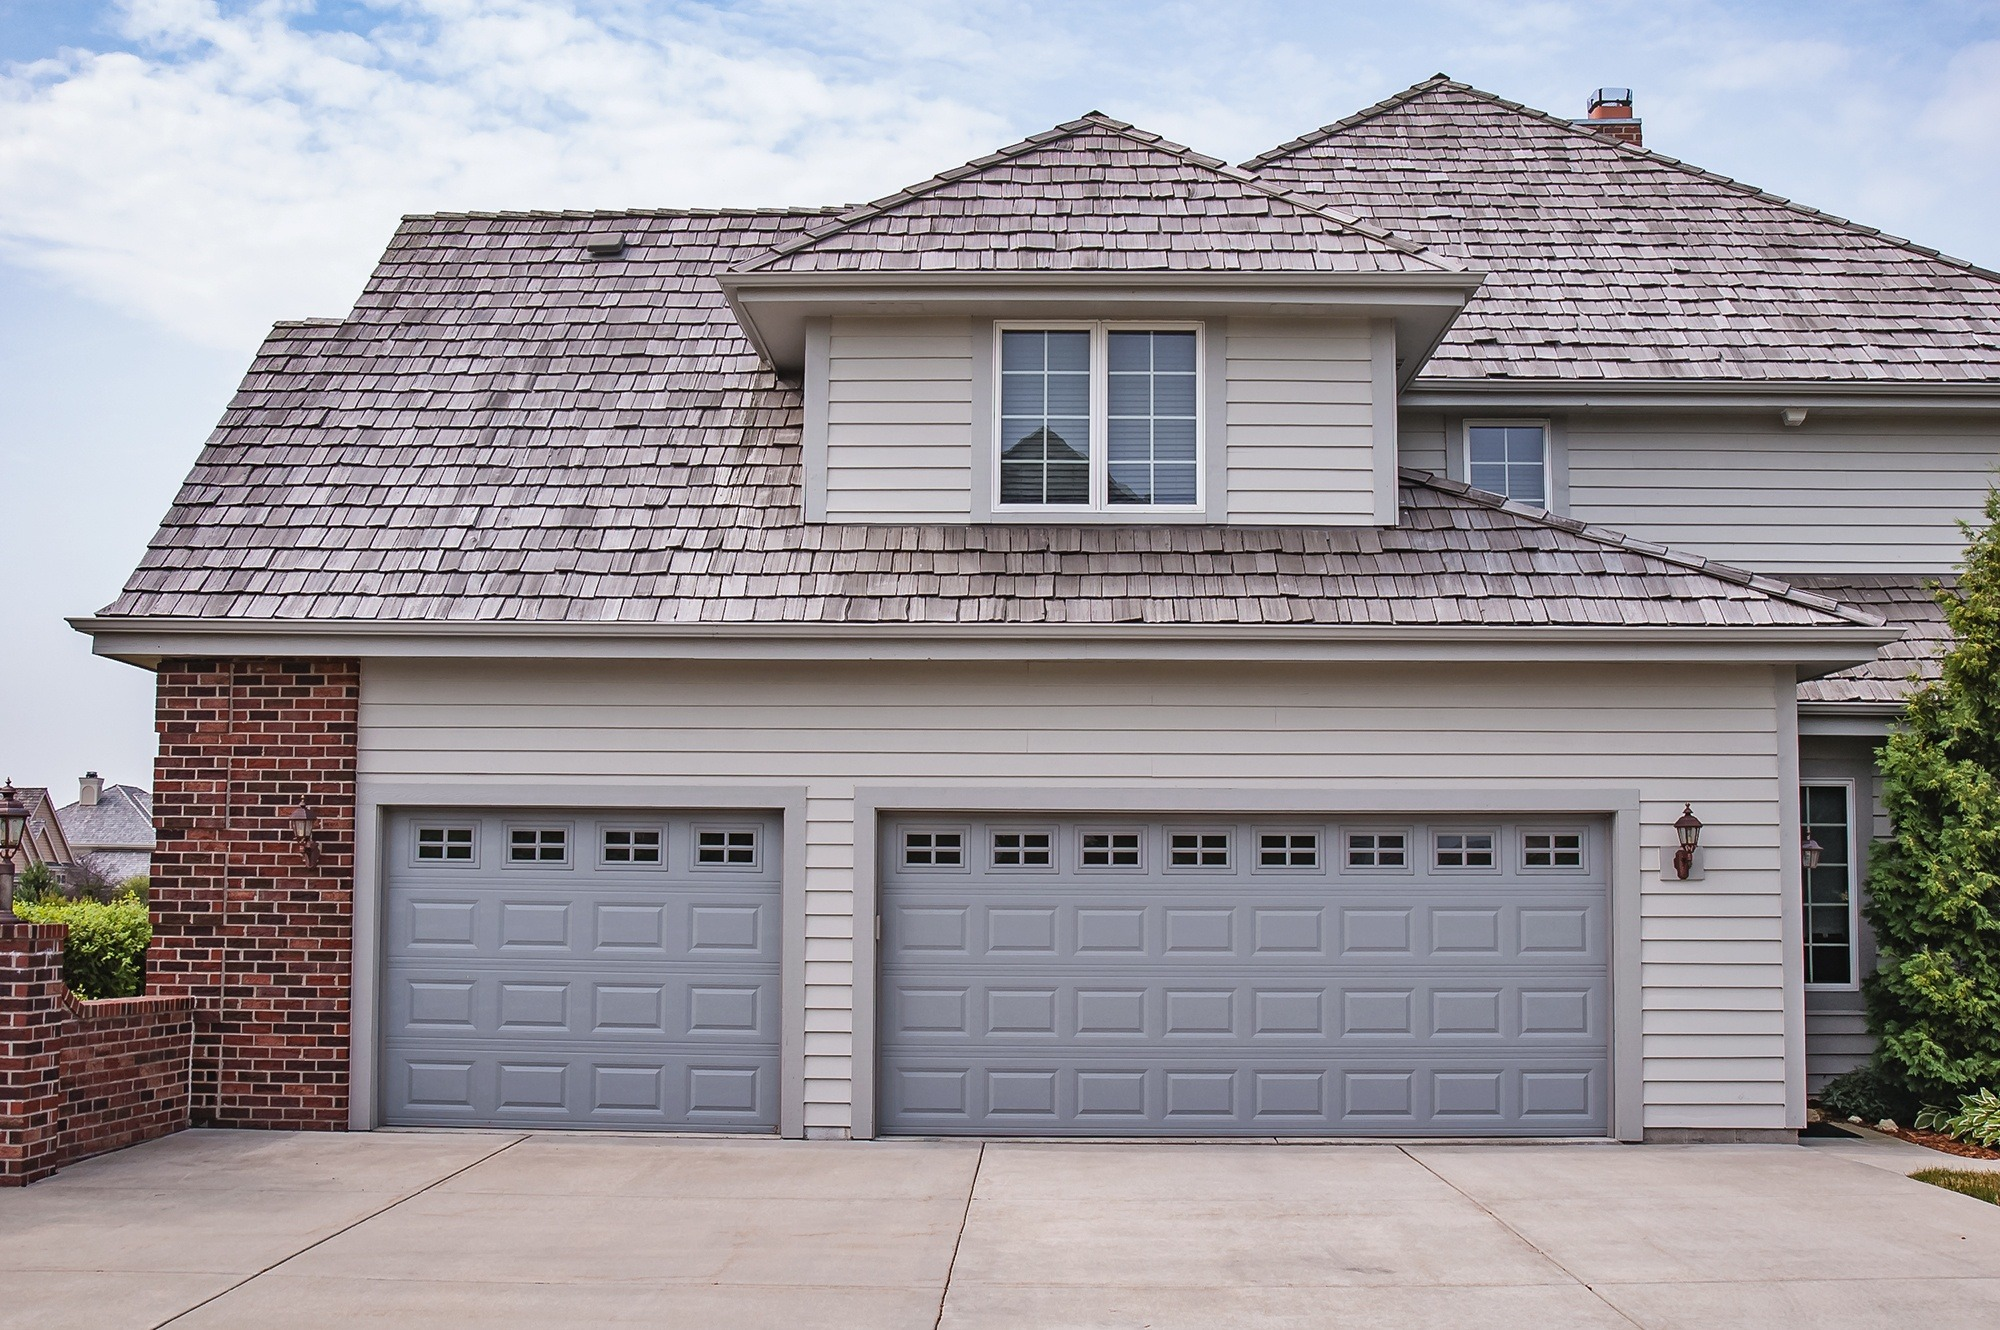 Garage Door Wedgie Garage Doors Repair Chi Garage Doors For Sale Minnesota Z2FyYWdlIGRvb3Igd2VkZ2ll. Garage Doors Rowville Melbourne Garage : doors rowville - pezcame.com